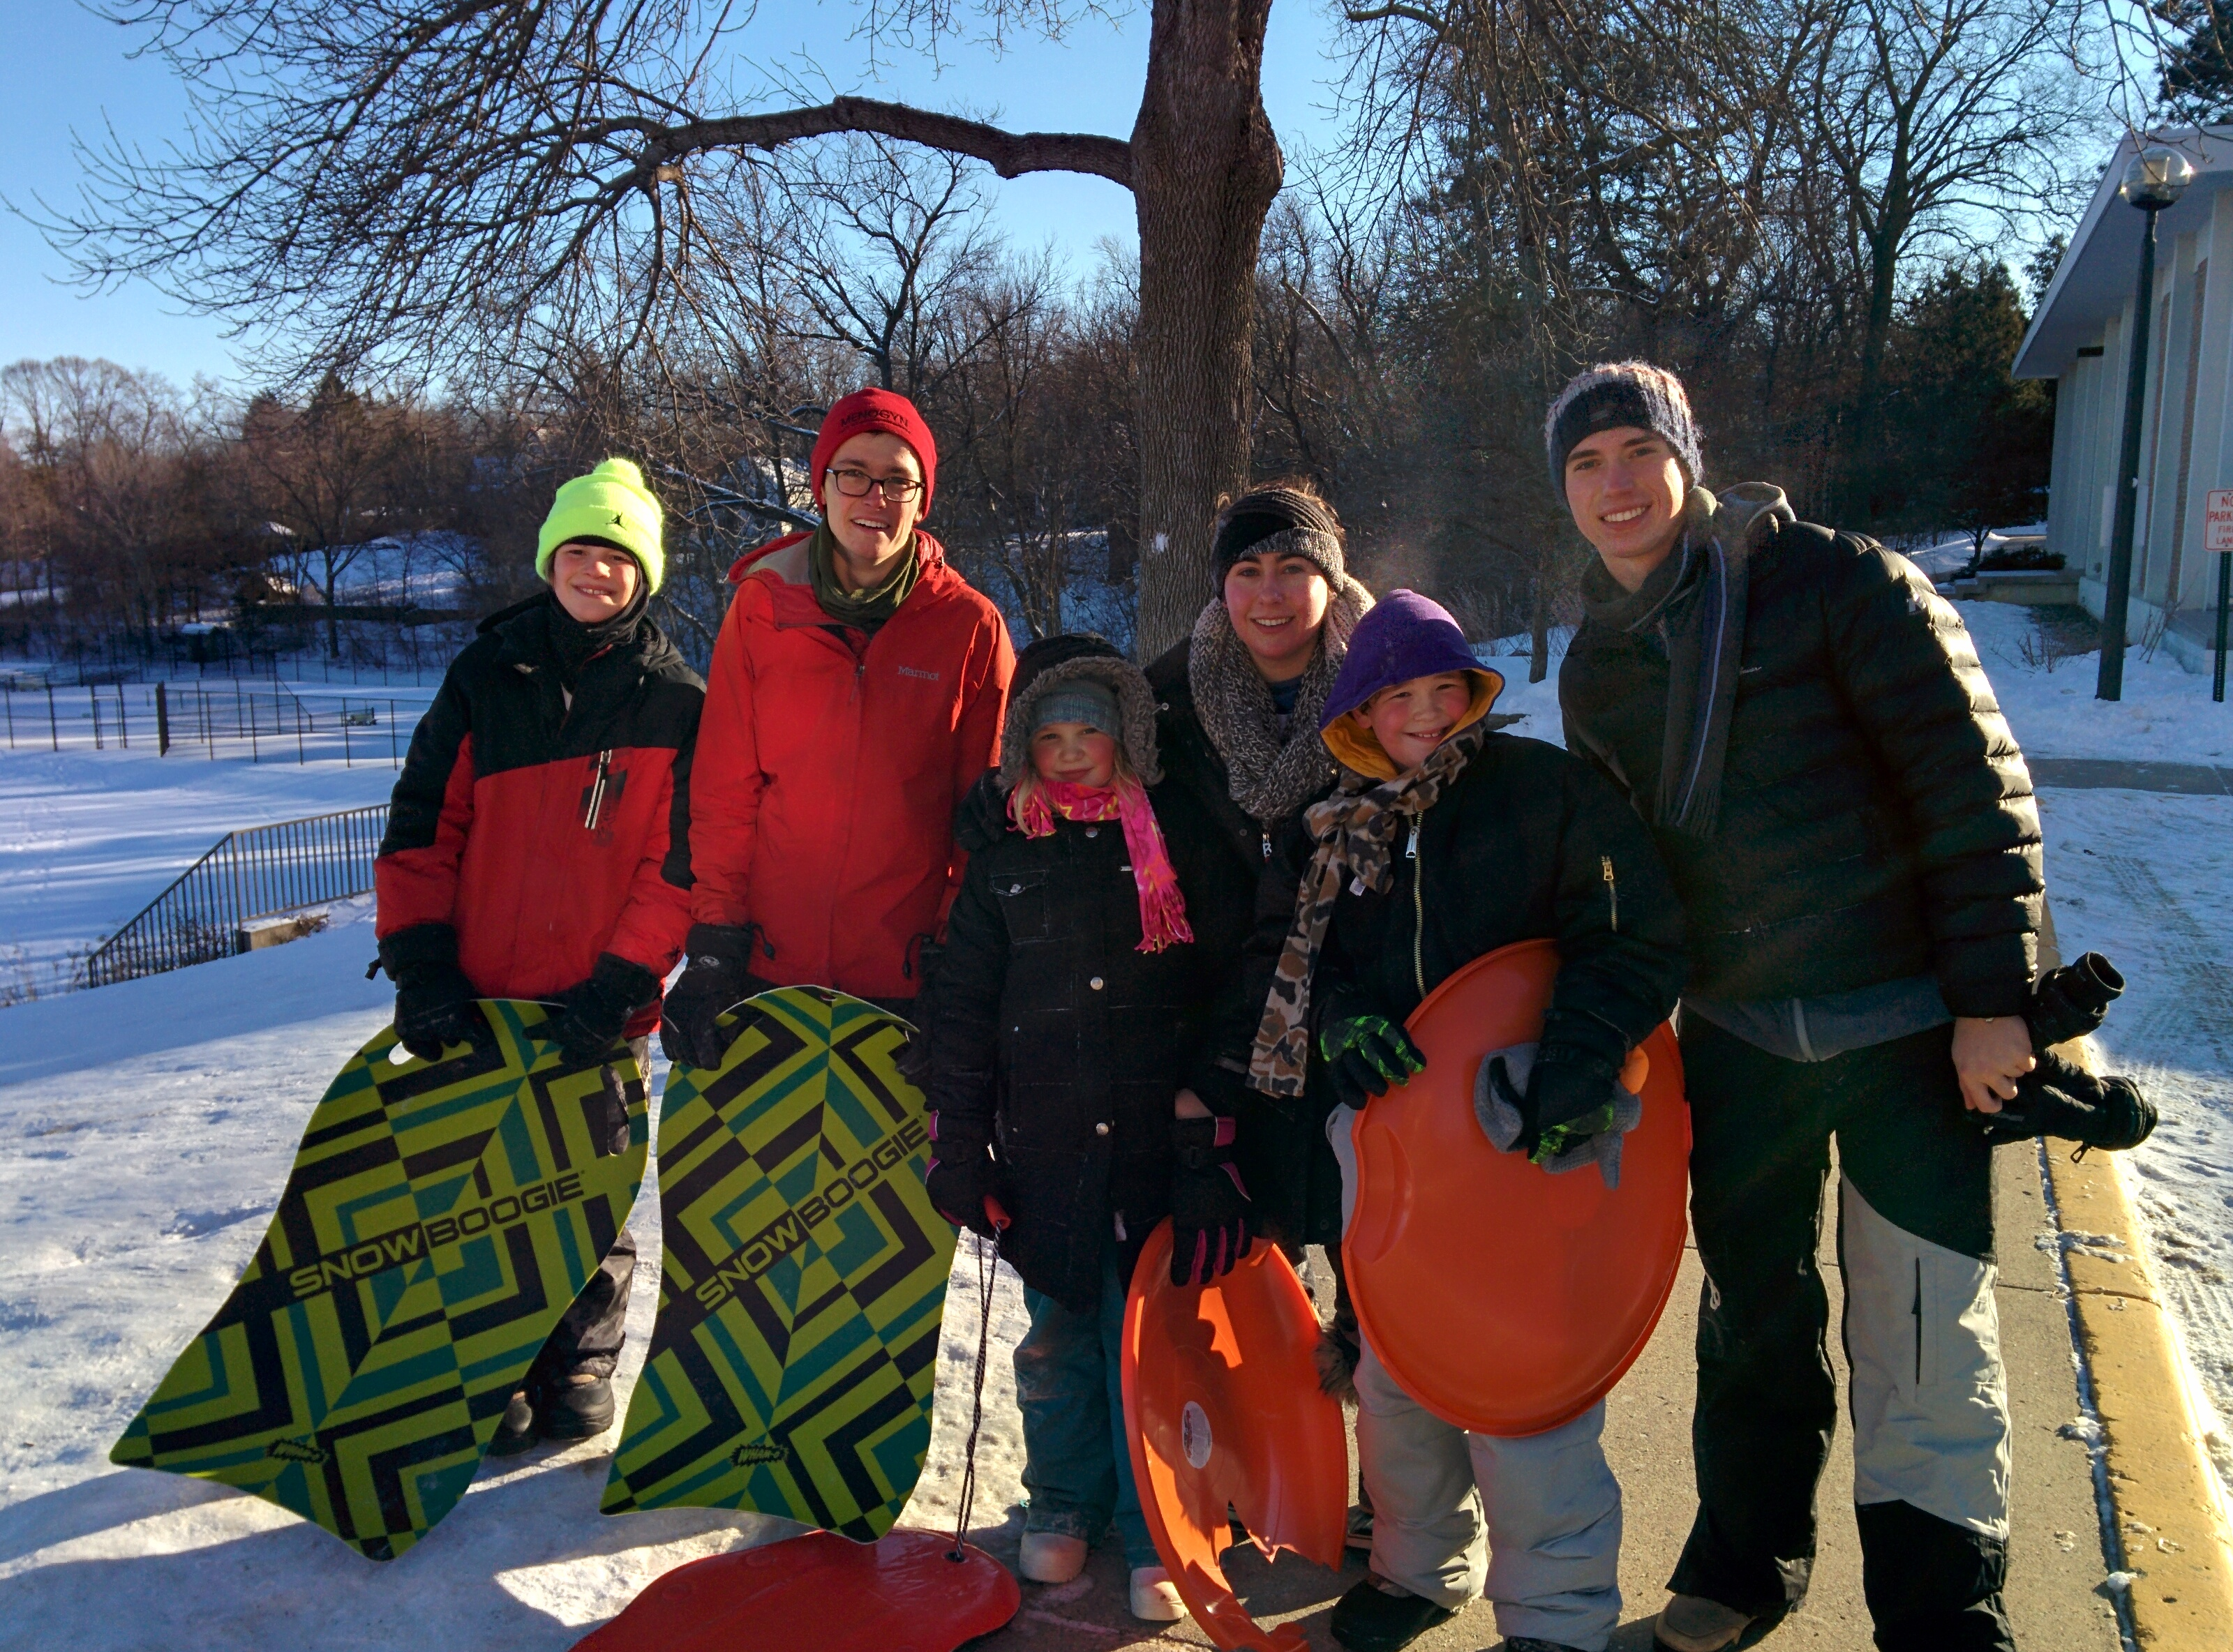 Sledding with Friends!